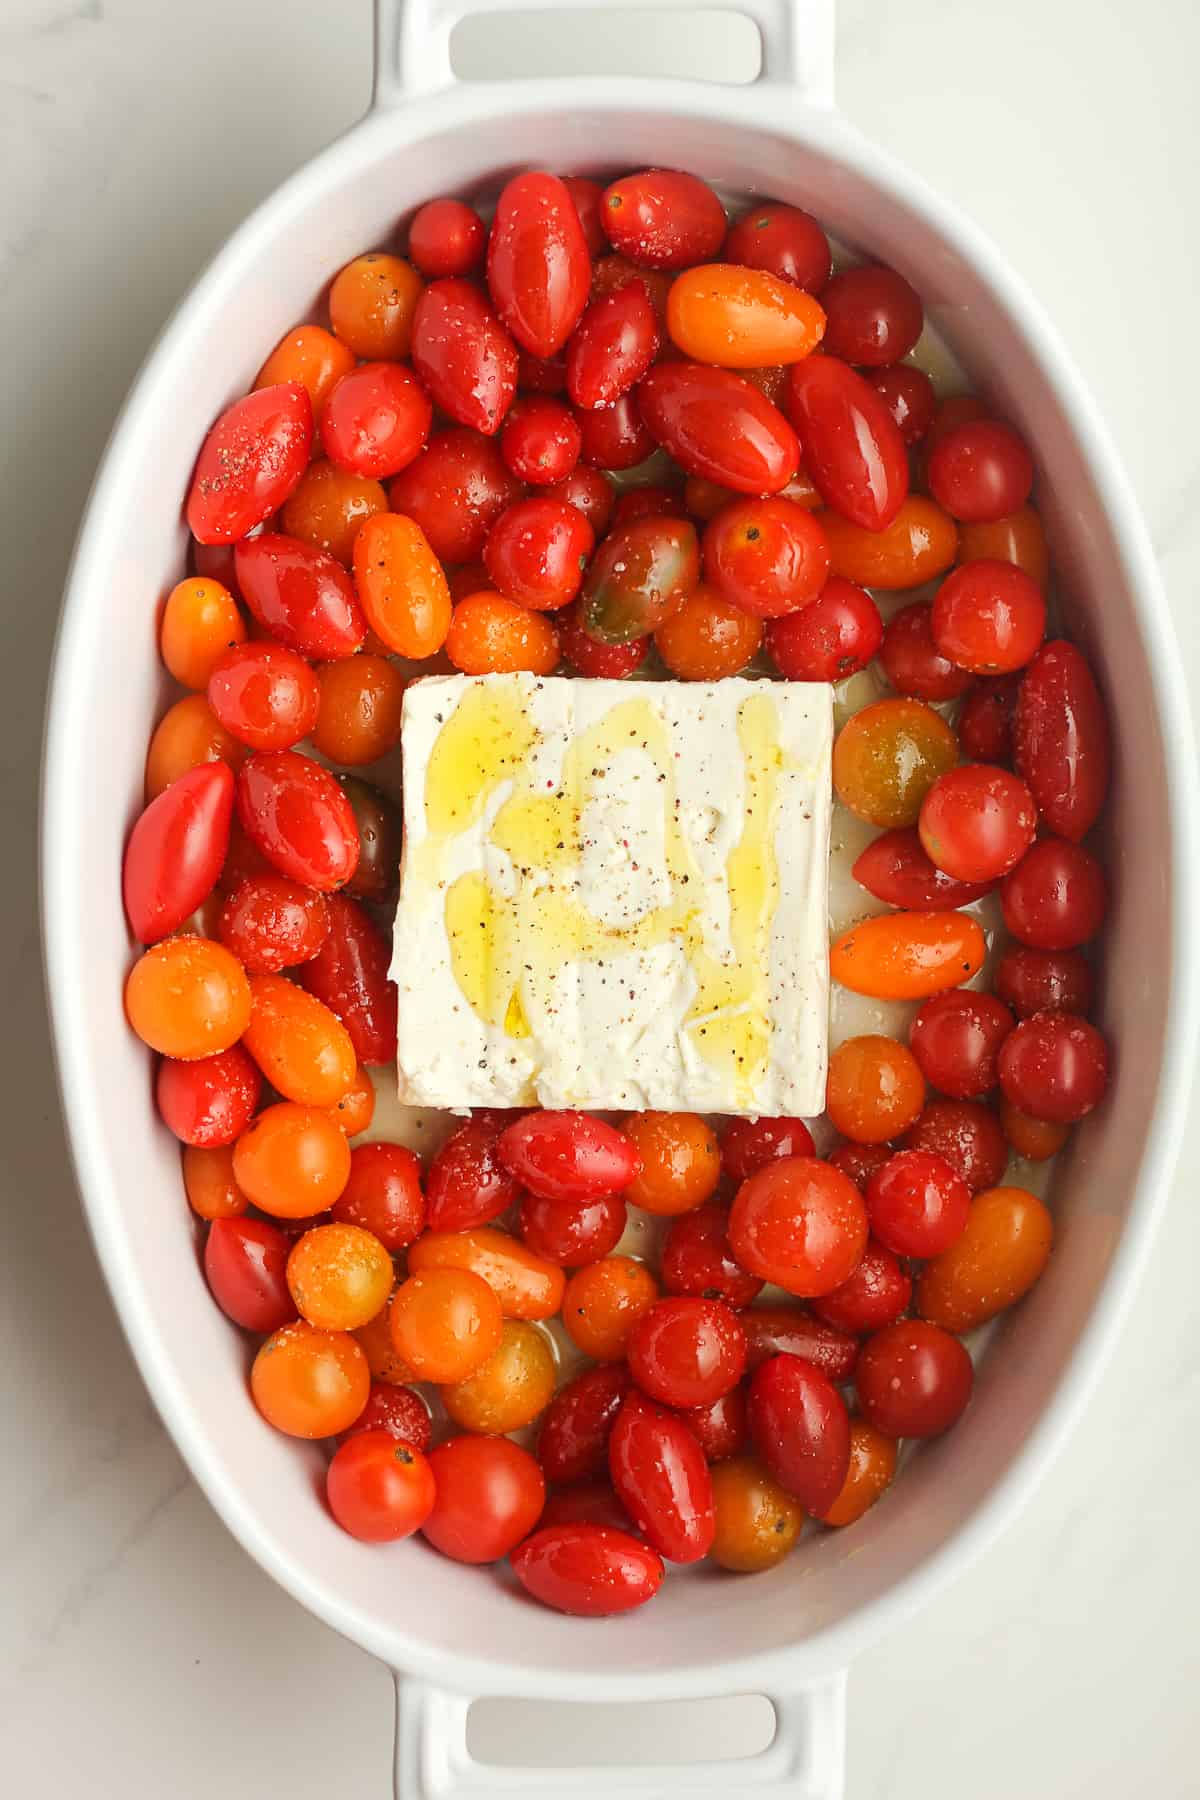 A dish of the tomatoes and cheese with olive oil.